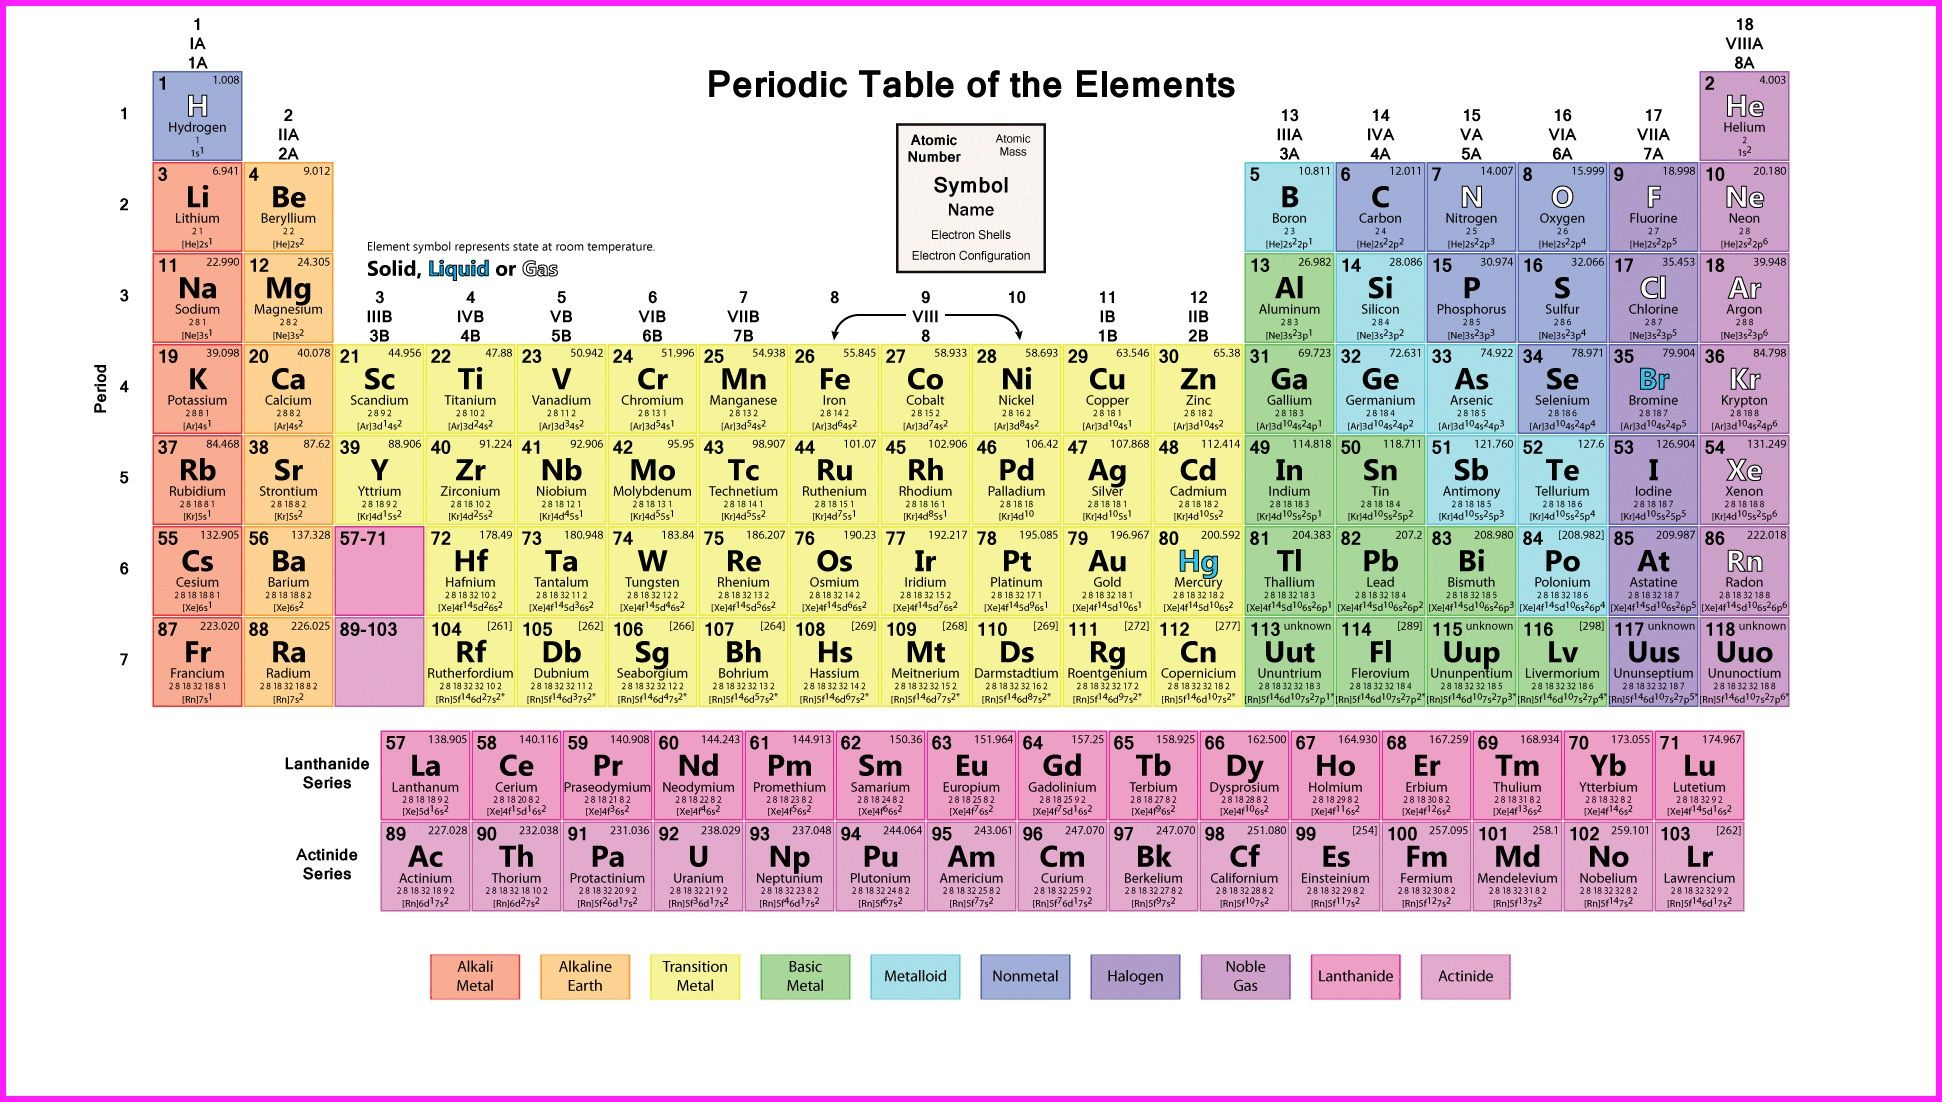 Periodic table wallpaper 1920x1080 periodic table wallpaper this printable color periodic table chart is colored to separate by element groups each cell contains the elements atomic number symbol name and mass biocorpaavc